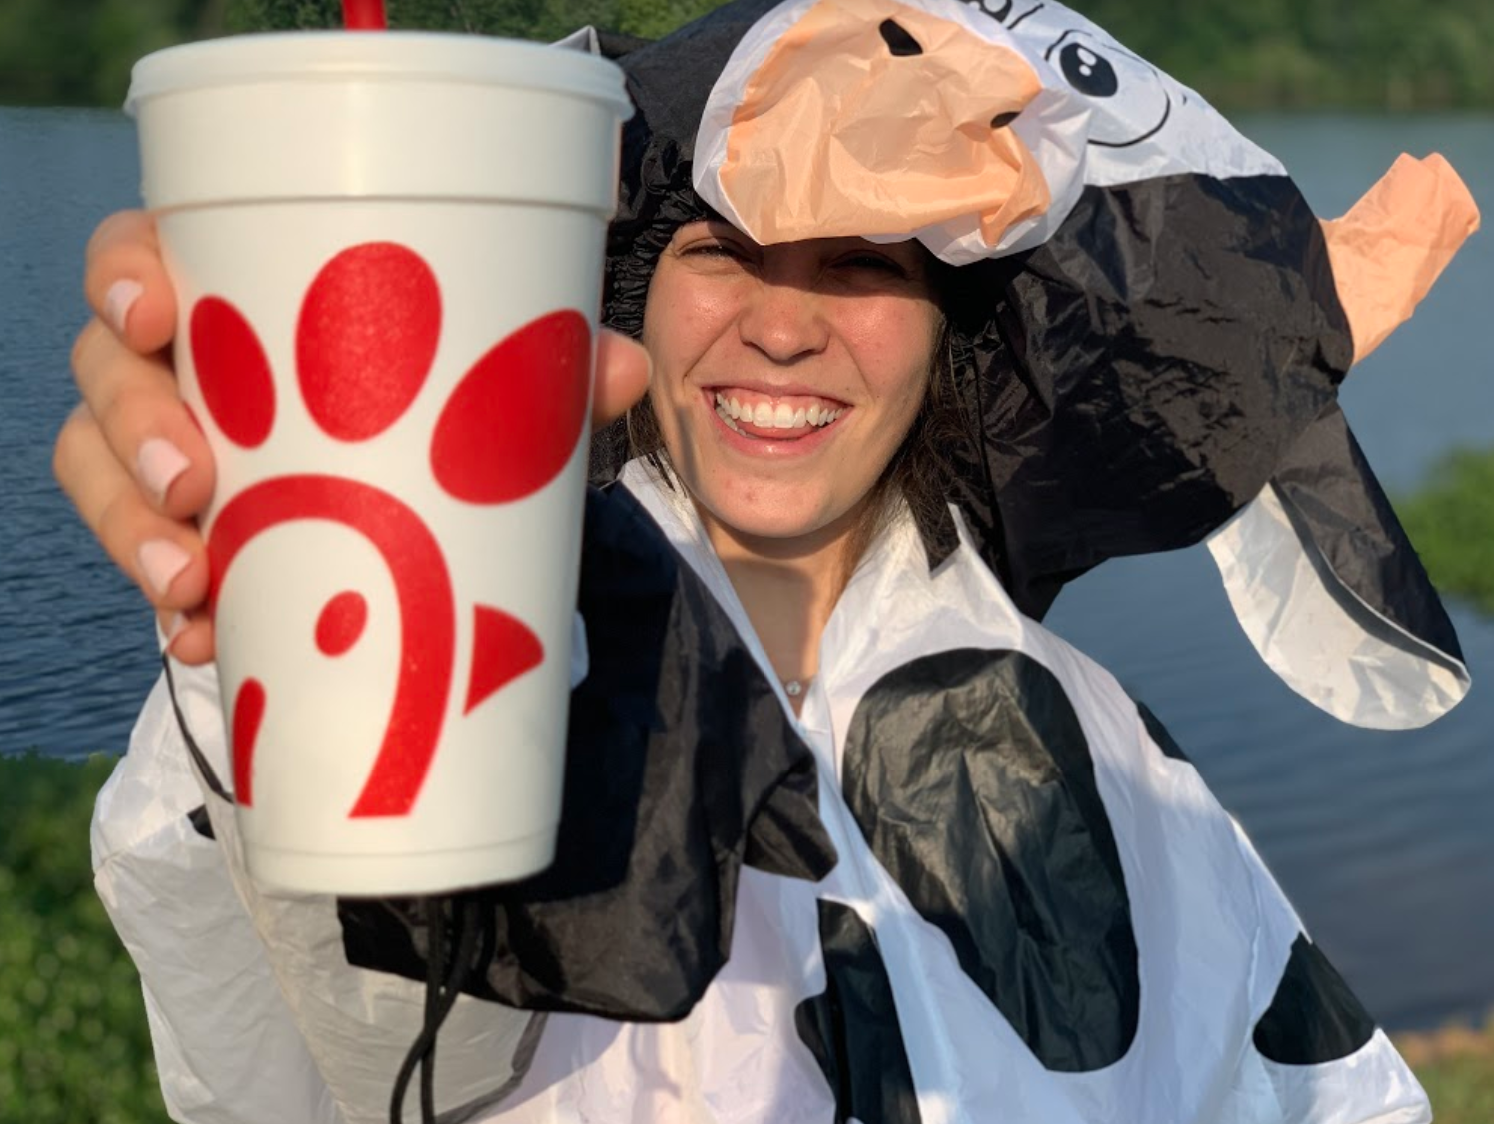 Woman dressed in cow-suit with Chik-fil-A cup